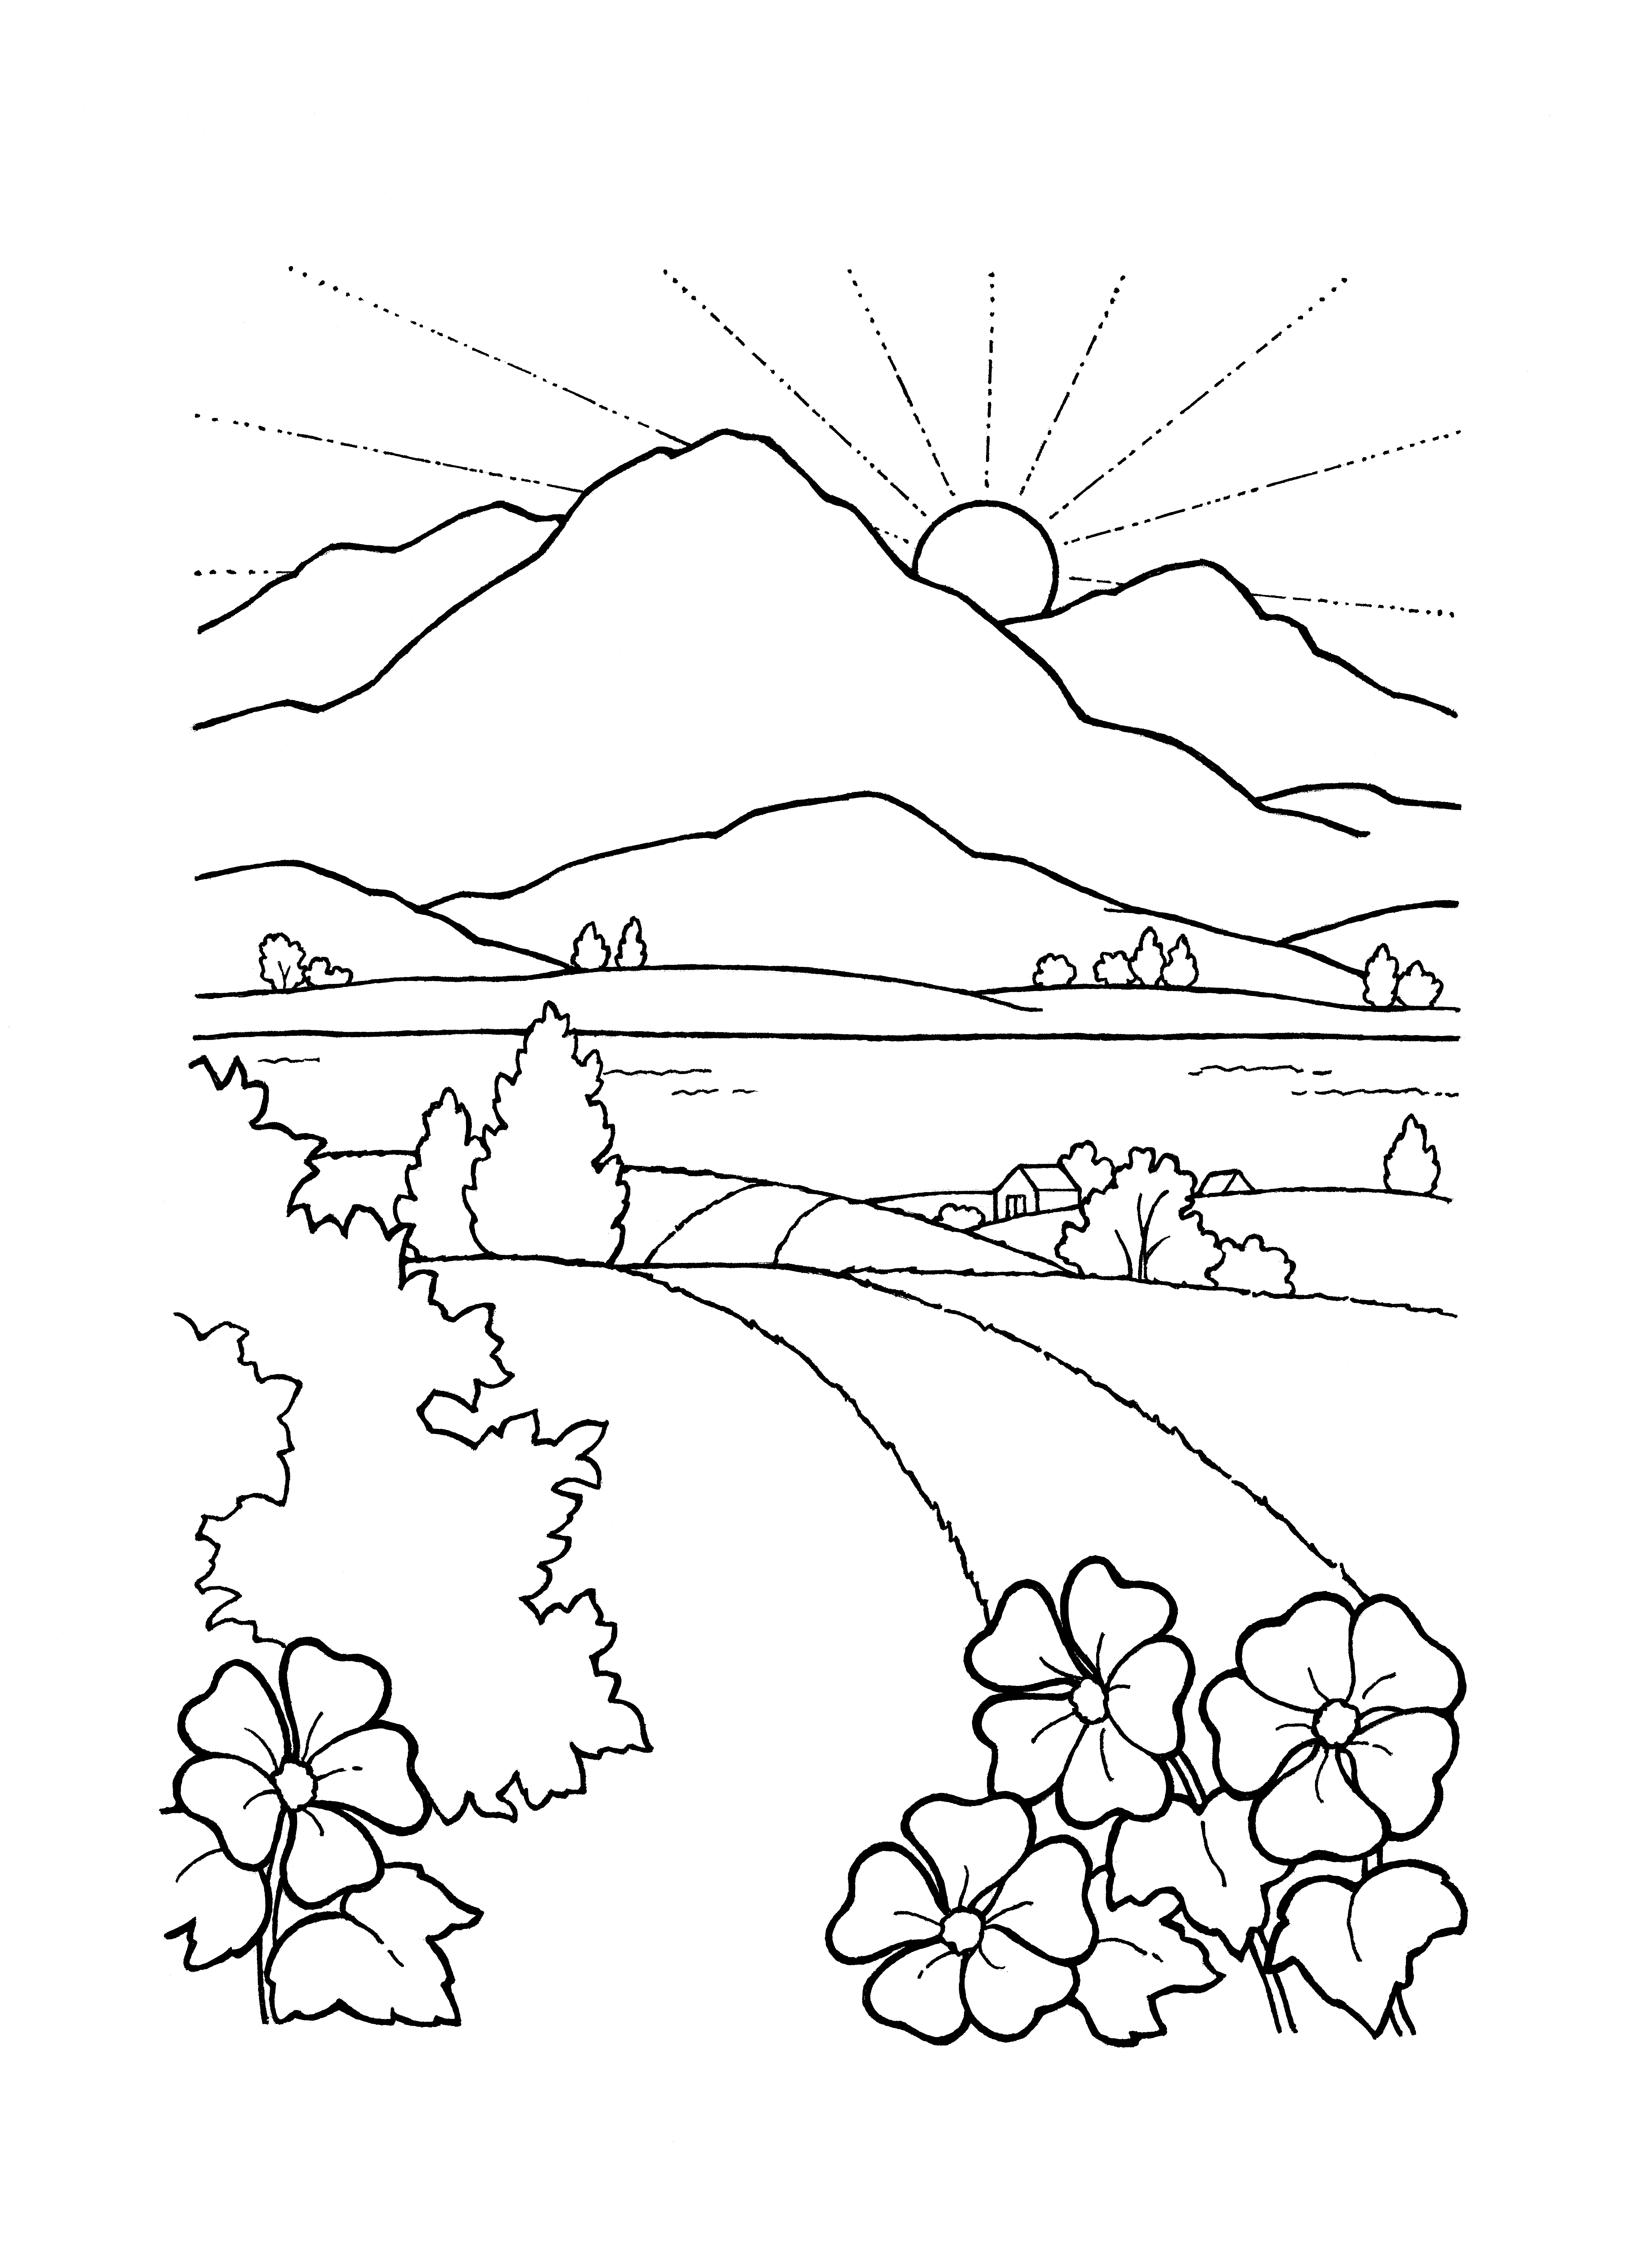 """An illustration of the thirteenth article of faith—""""Seek"""" (the sun rising over a beautiful landscape)."""